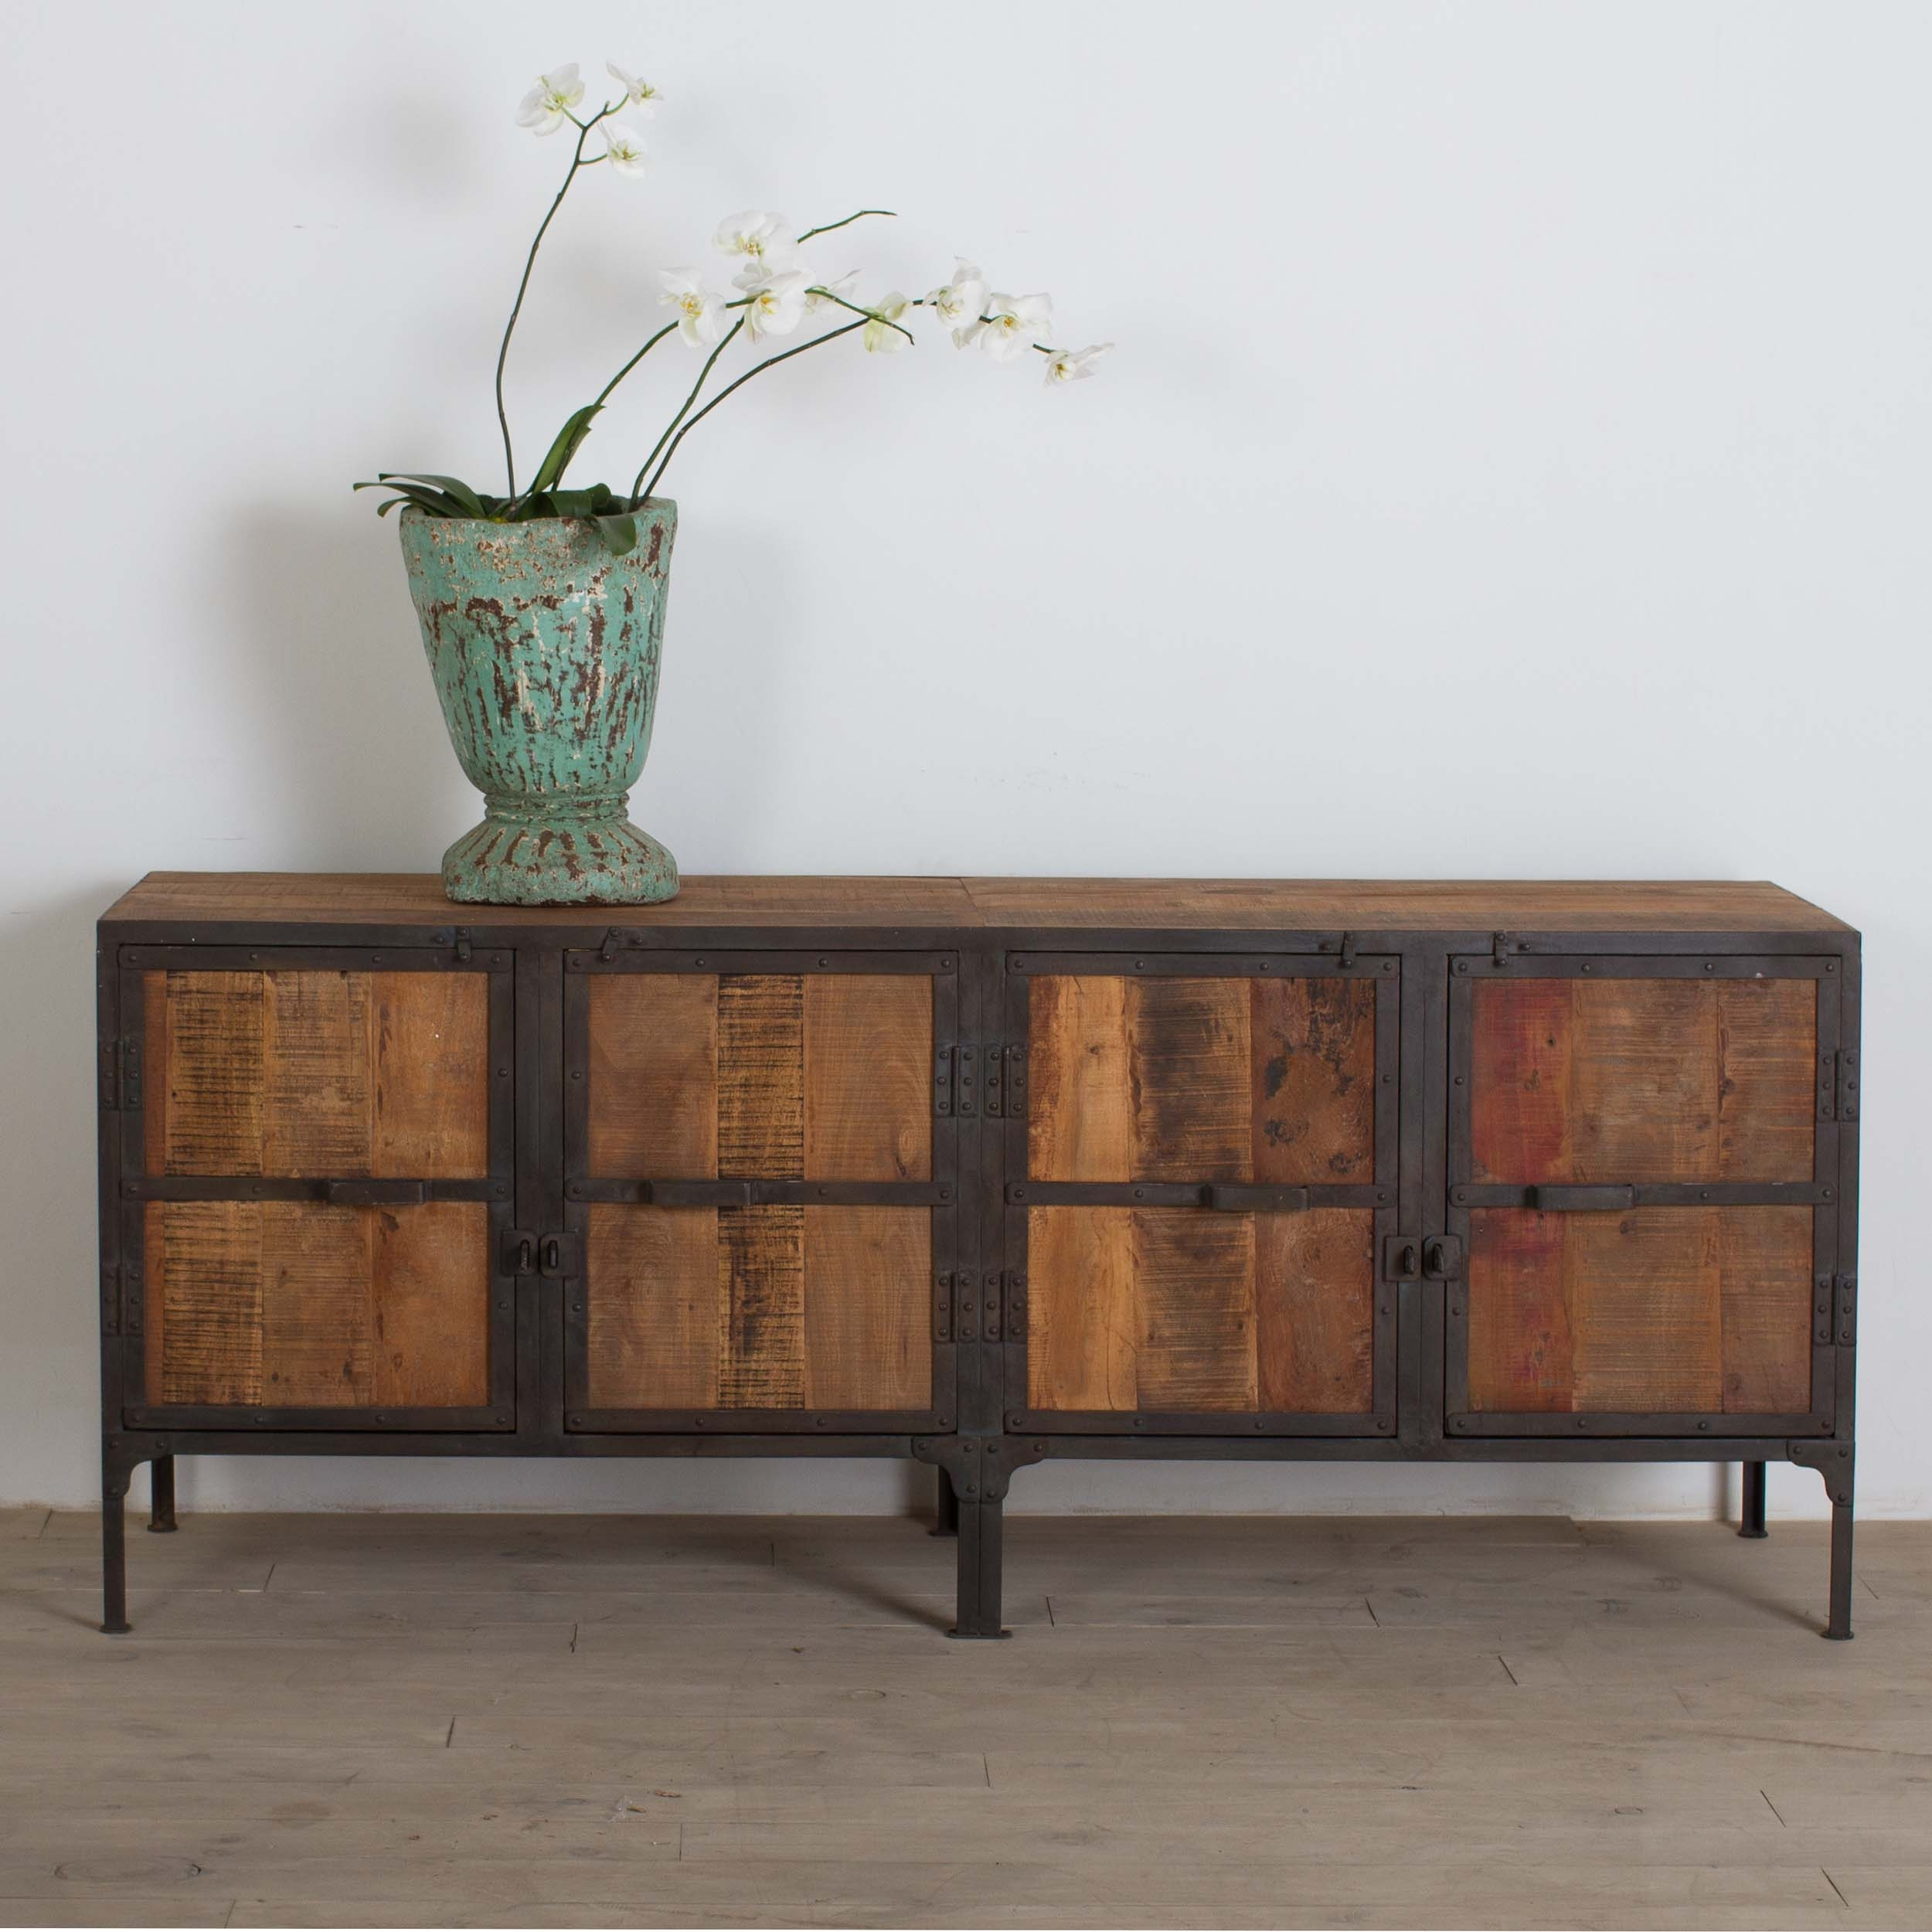 Shop Handmade Cg Sparks Handmade Hyderabad Reclaimed Wood And Metal Intended For Most Recently Released Reclaimed Sideboards With Metal Panel (#13 of 20)